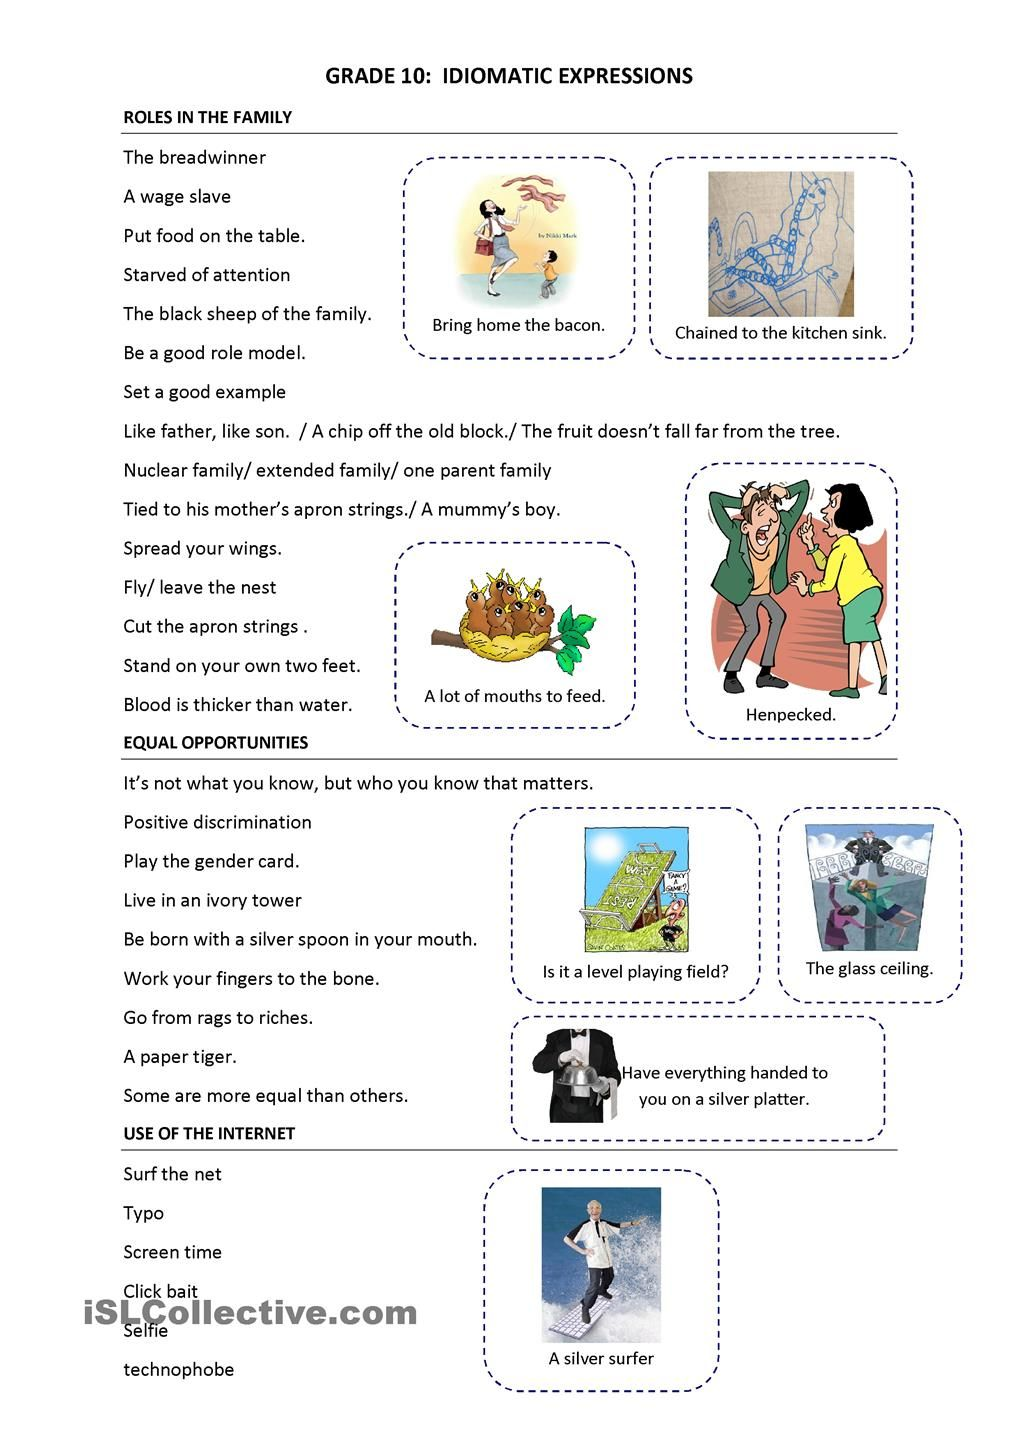 esl the topic of interest Hobbies this is the preparation material for an english conversation lesson about hobbies and interests there is an audio file in which two people discuss their hobbies, some common idioms that we might use when discussing hobbies and a list of conversation questions that people might ask eachother when talking about this subject.